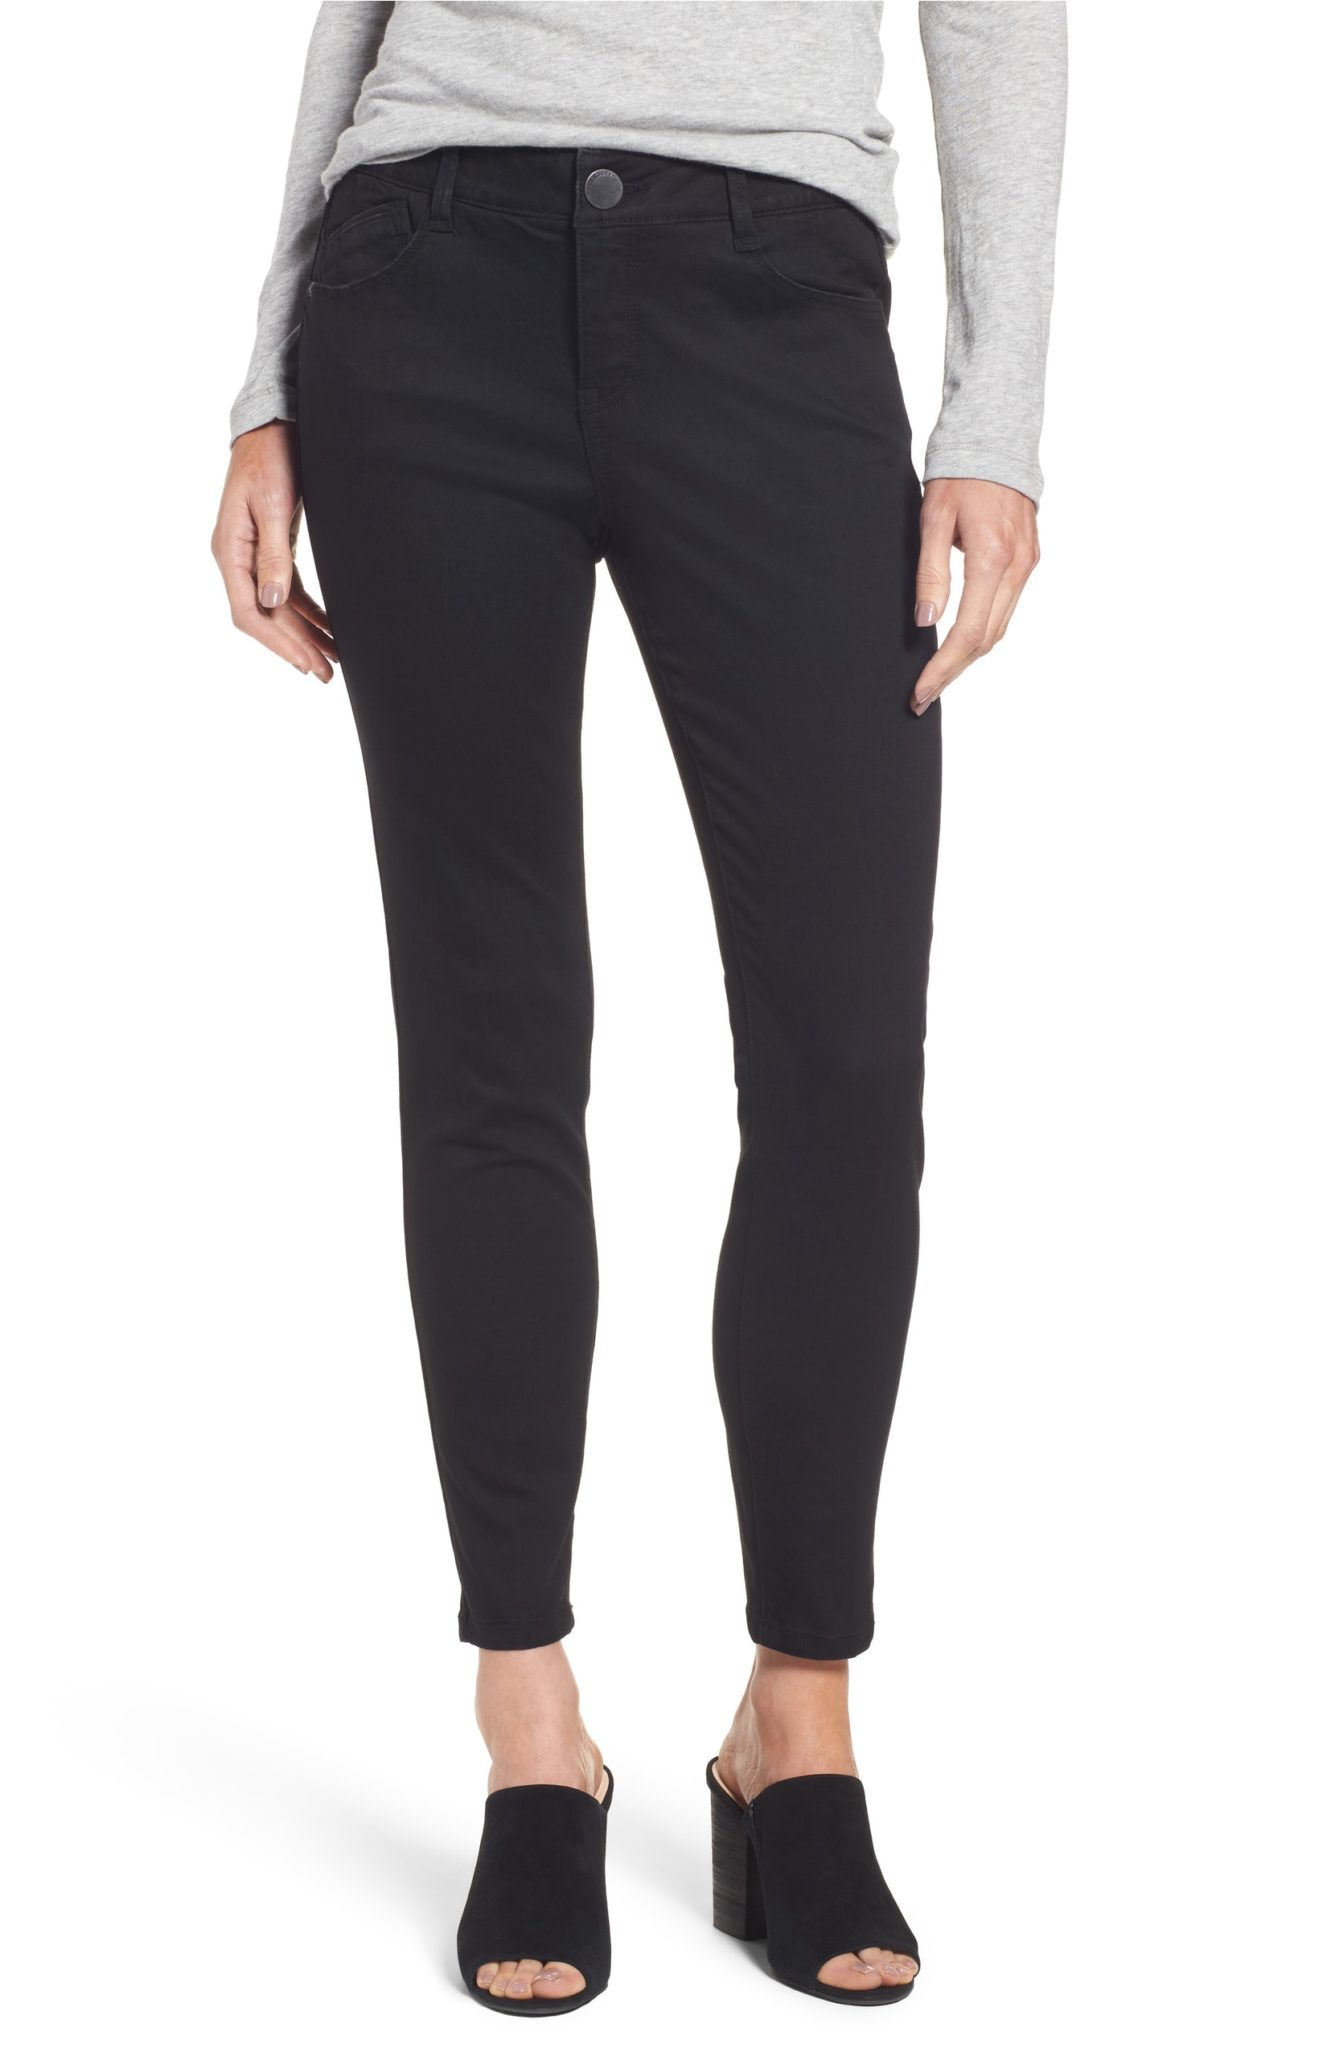 Super comfortable and flattering black skinny jeans!